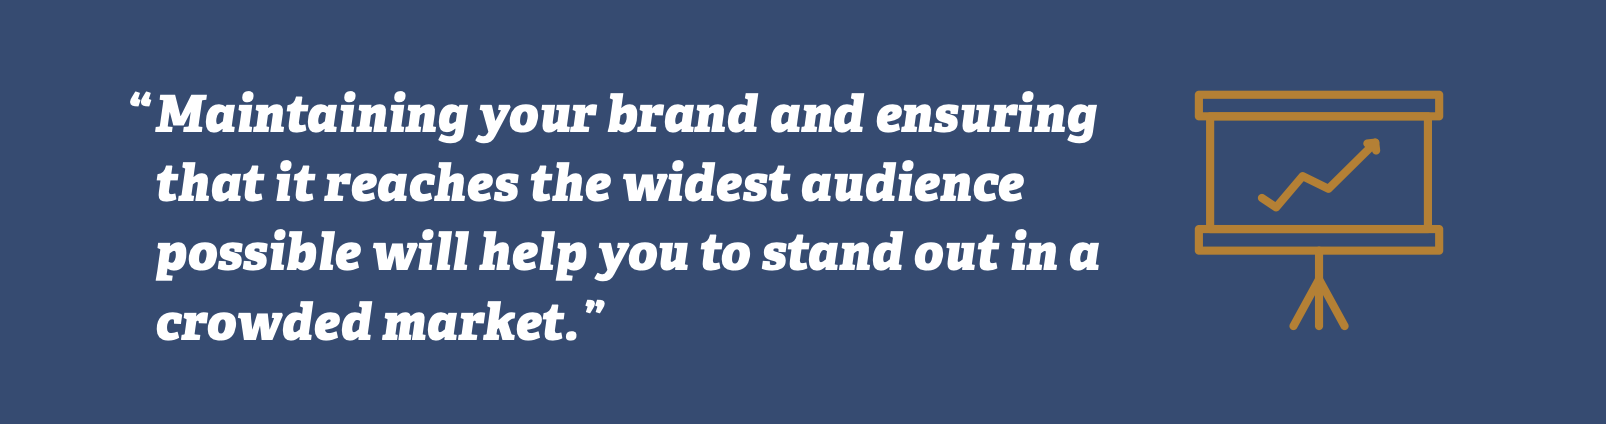 Maintaining your brand and ensuring that it reaches the widest audience possible will help you to stand out in a crowded market.